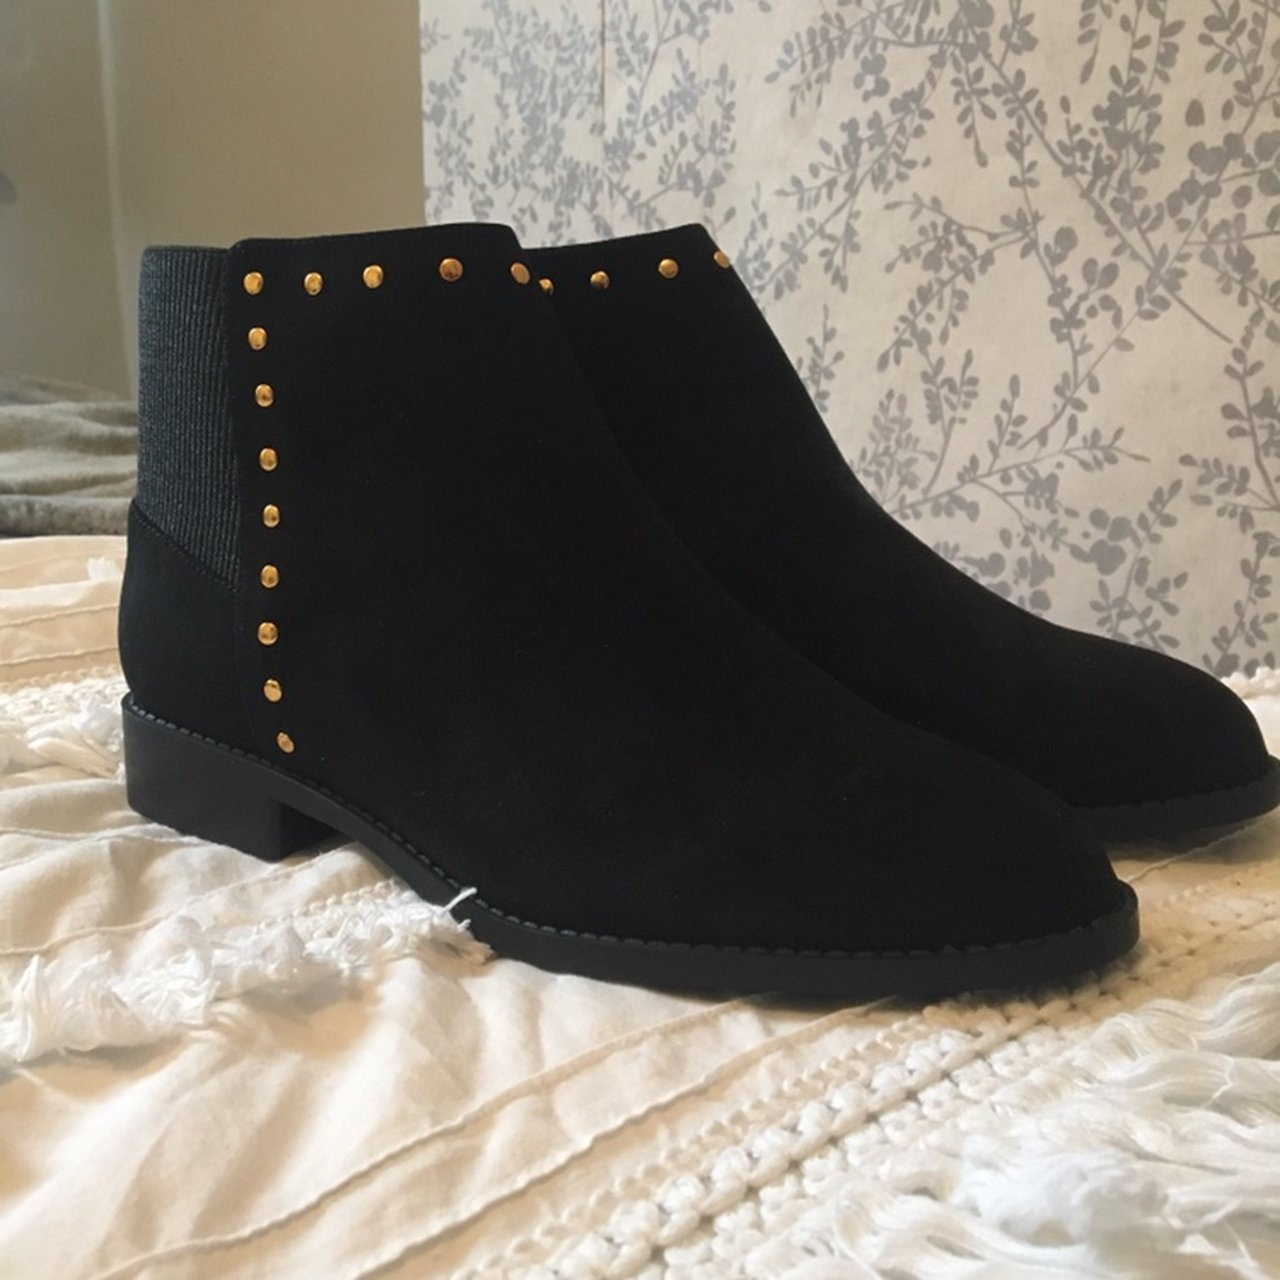 9b3facd5e02 Faith black Chelsea boots (suede) with studded detail unworn - Depop